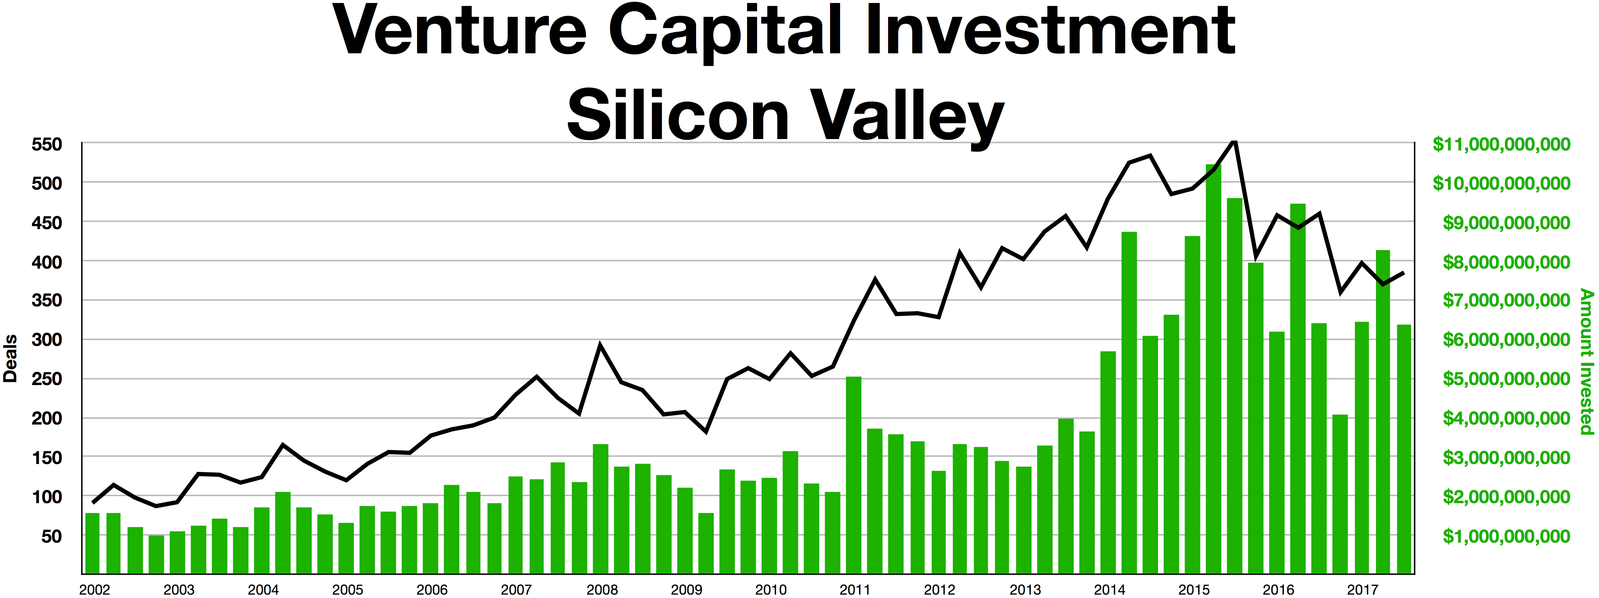 File:Silicon Vally Venture Capital investment.png - Wikipedi